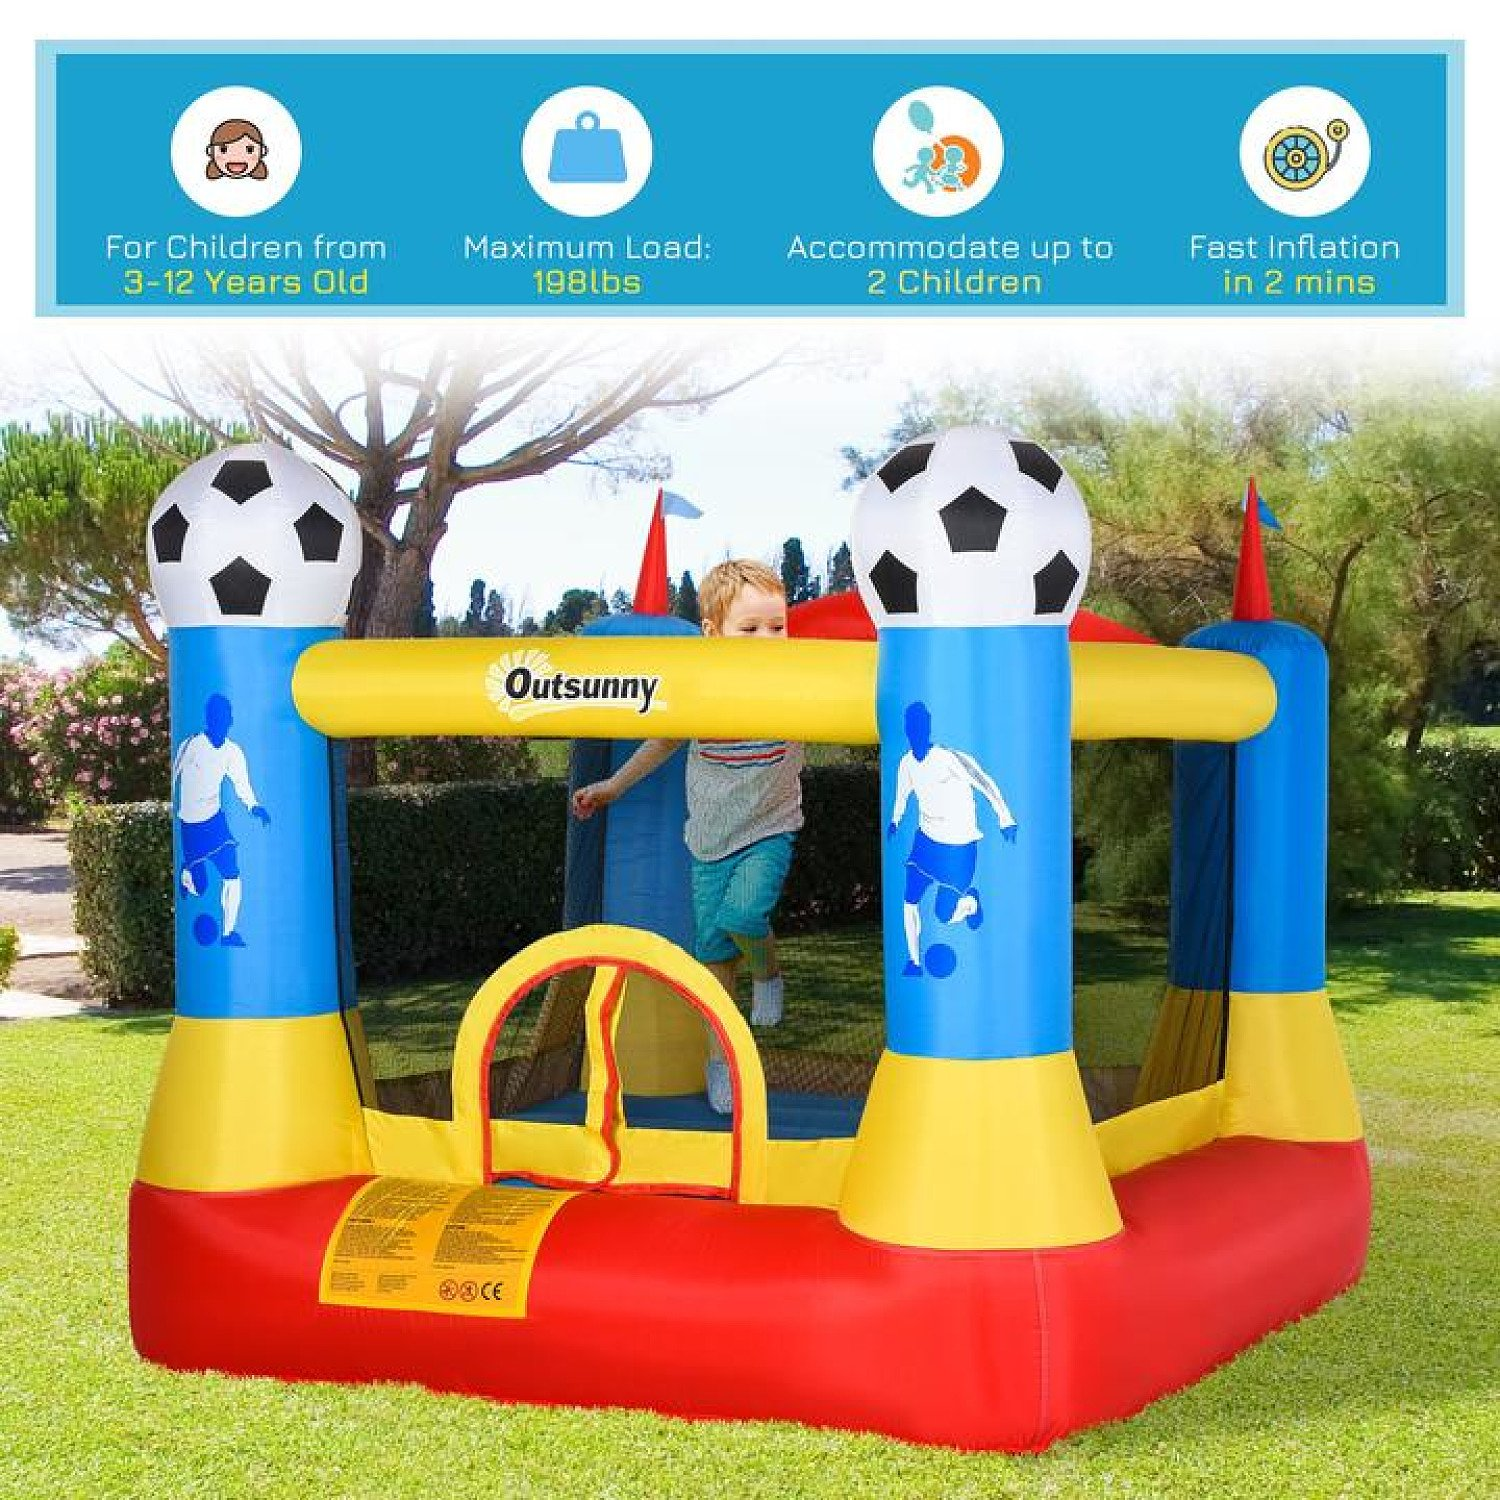 Kids Bouncy Castle House Inflatable Trampoline with Blower for Kids Age 3-12 Free Postage